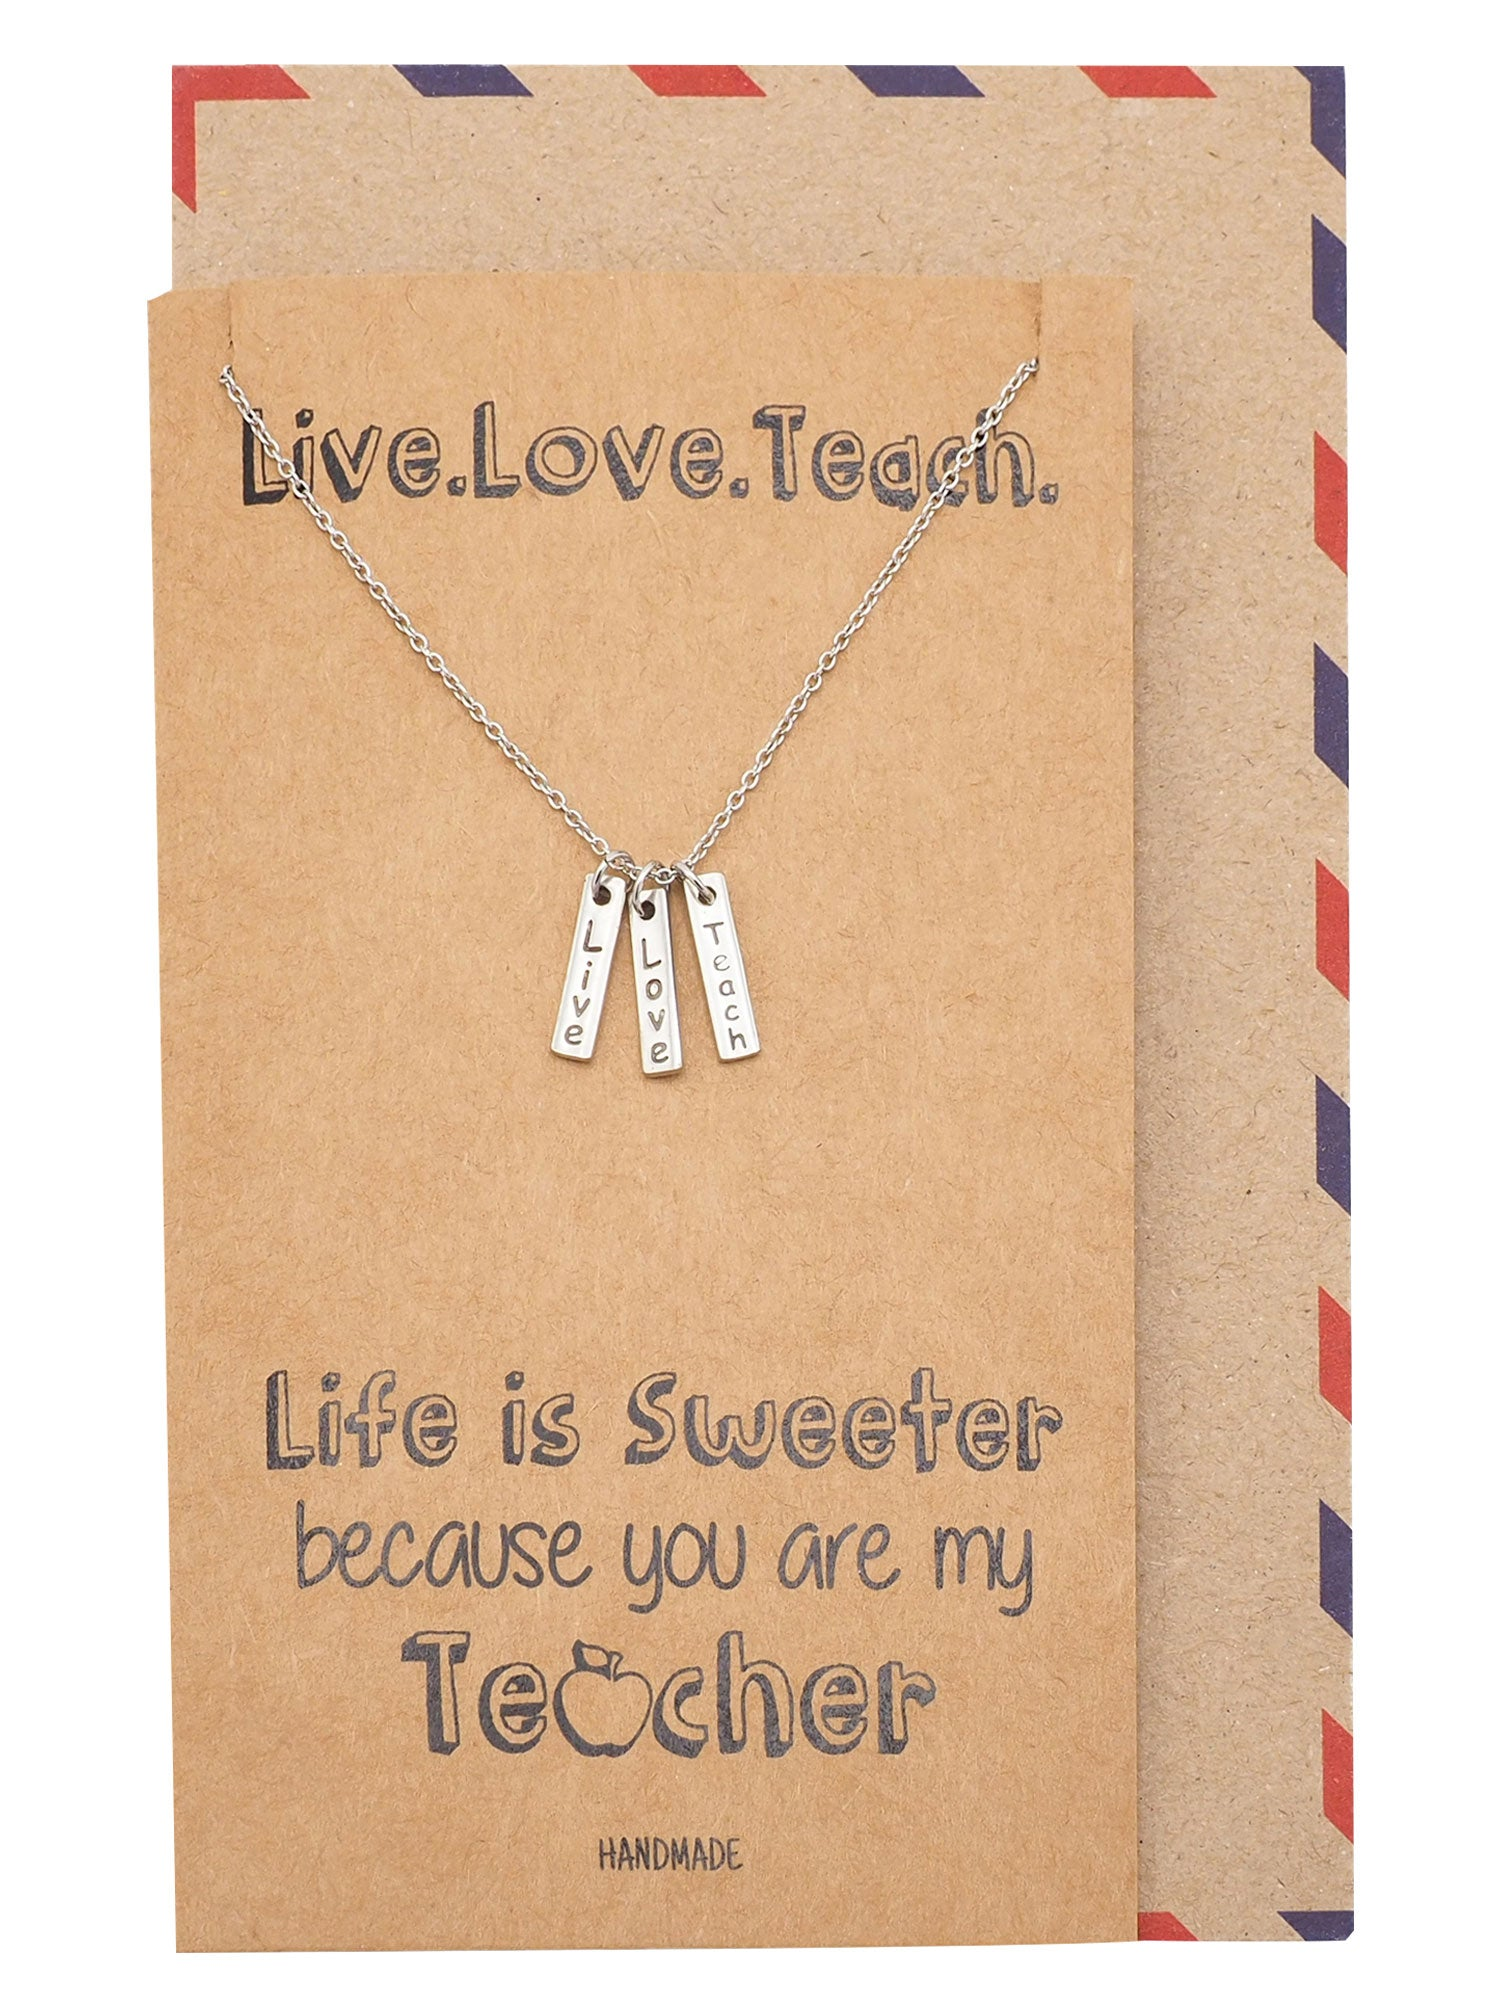 Michayla Live Love Teach Bar Pendant Necklace, Thank You Teacher Necklace